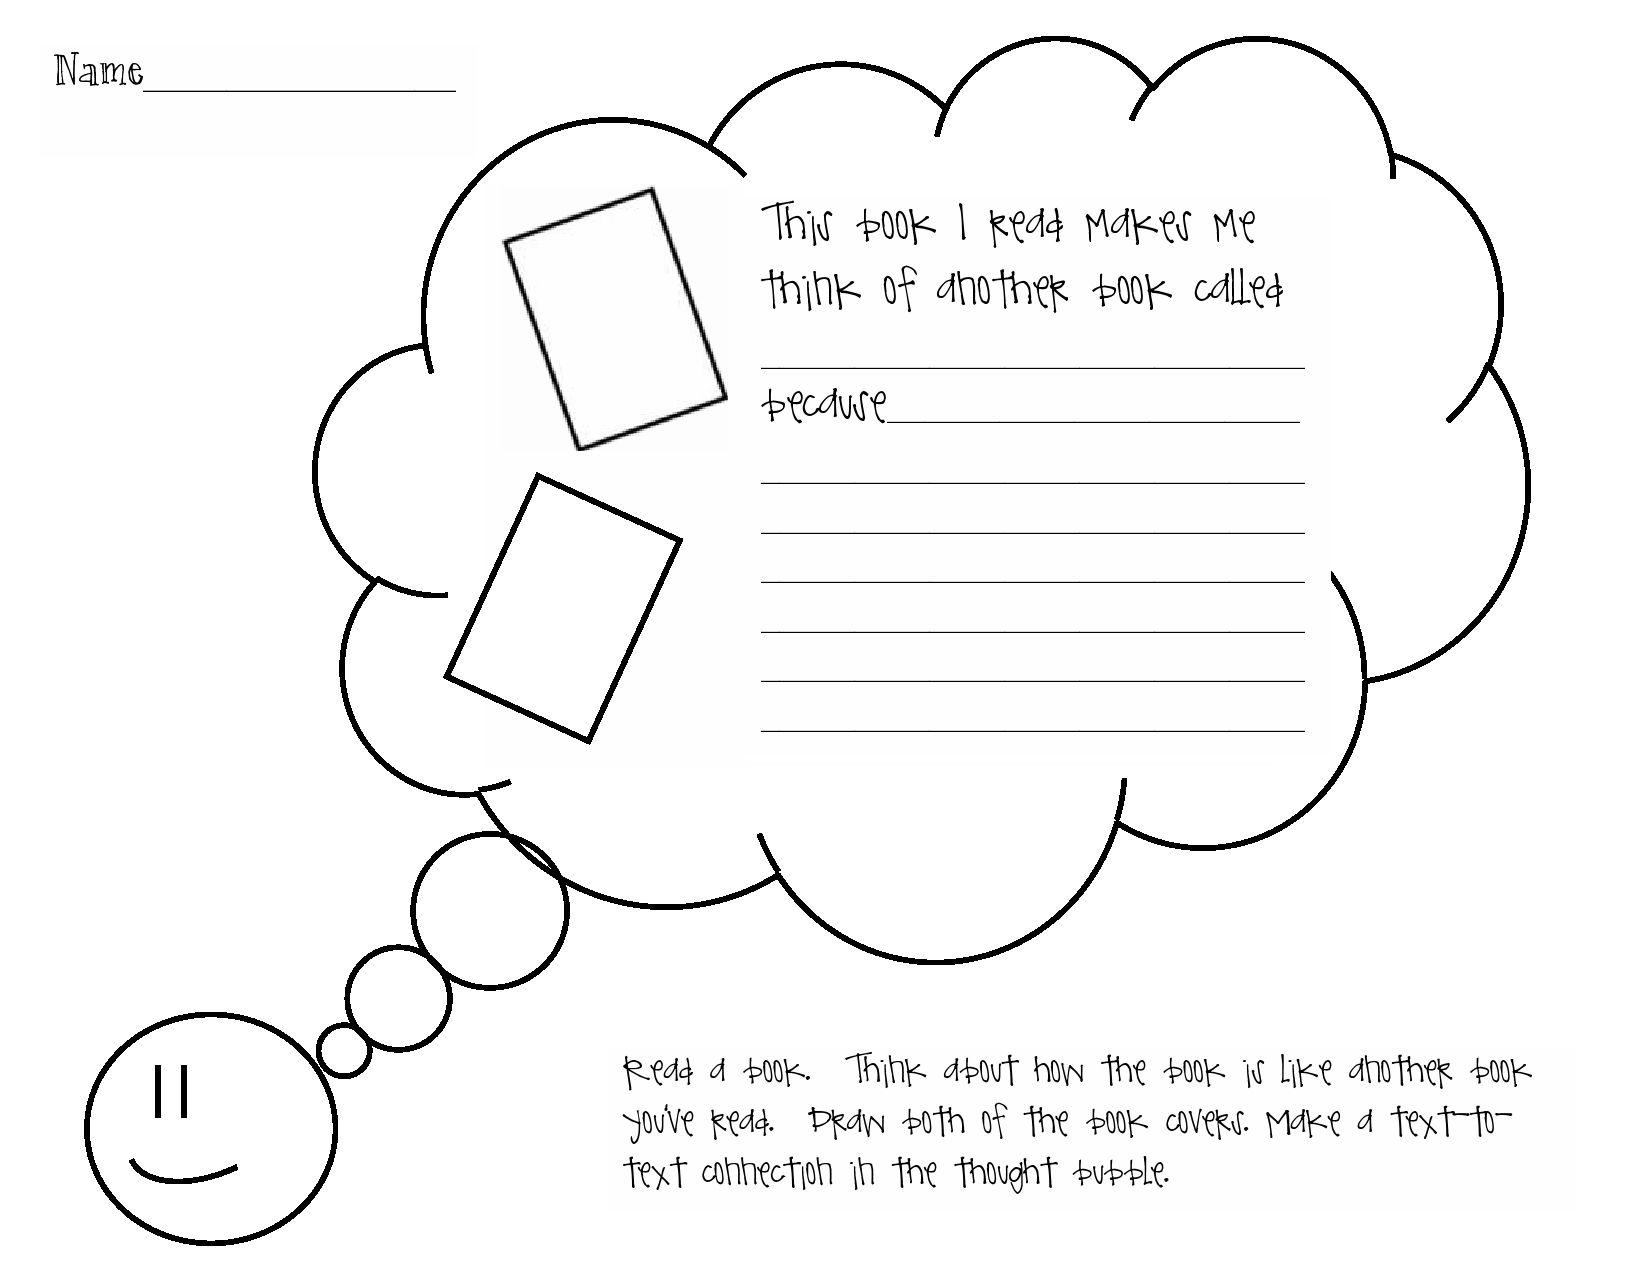 worksheet Making Connections Worksheets 17 images about connections on pinterest graphic organizers making and comprehension